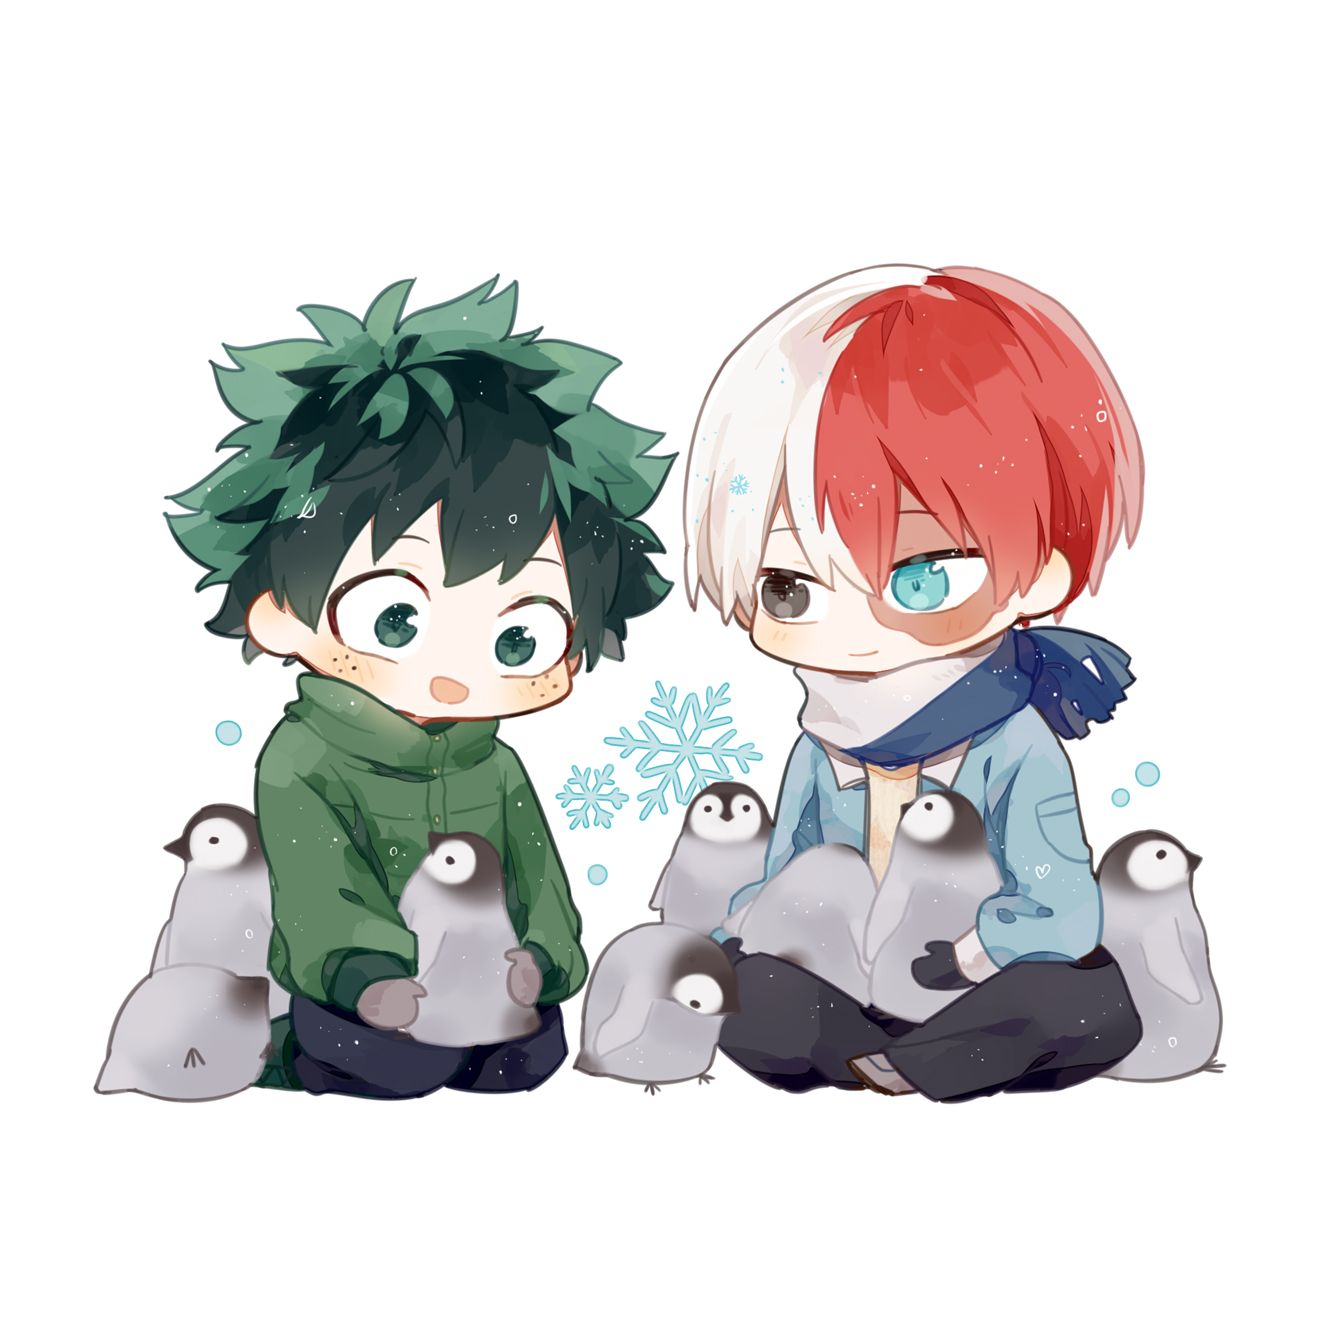 Midoriya Izuku and Todoroki Shouto My hero, Hero, Anime